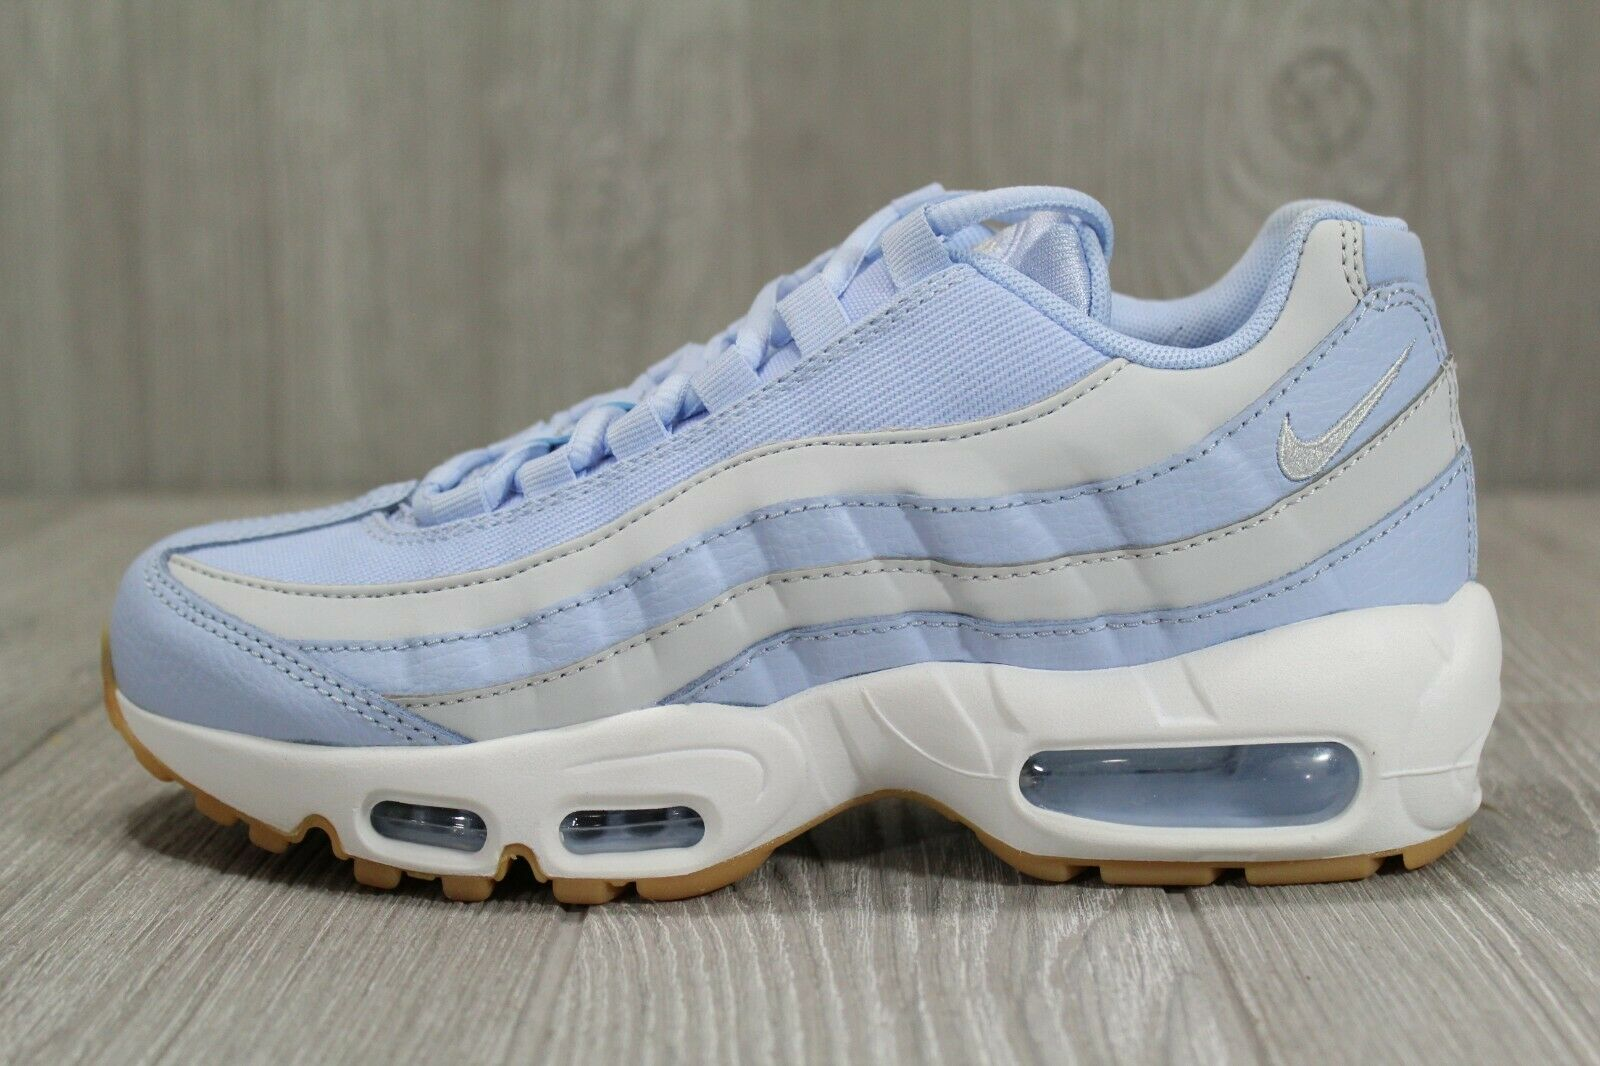 39 New Womens Nike Air Max 95 OG bluee Tint Gum shoes Size 6.5 307960 403